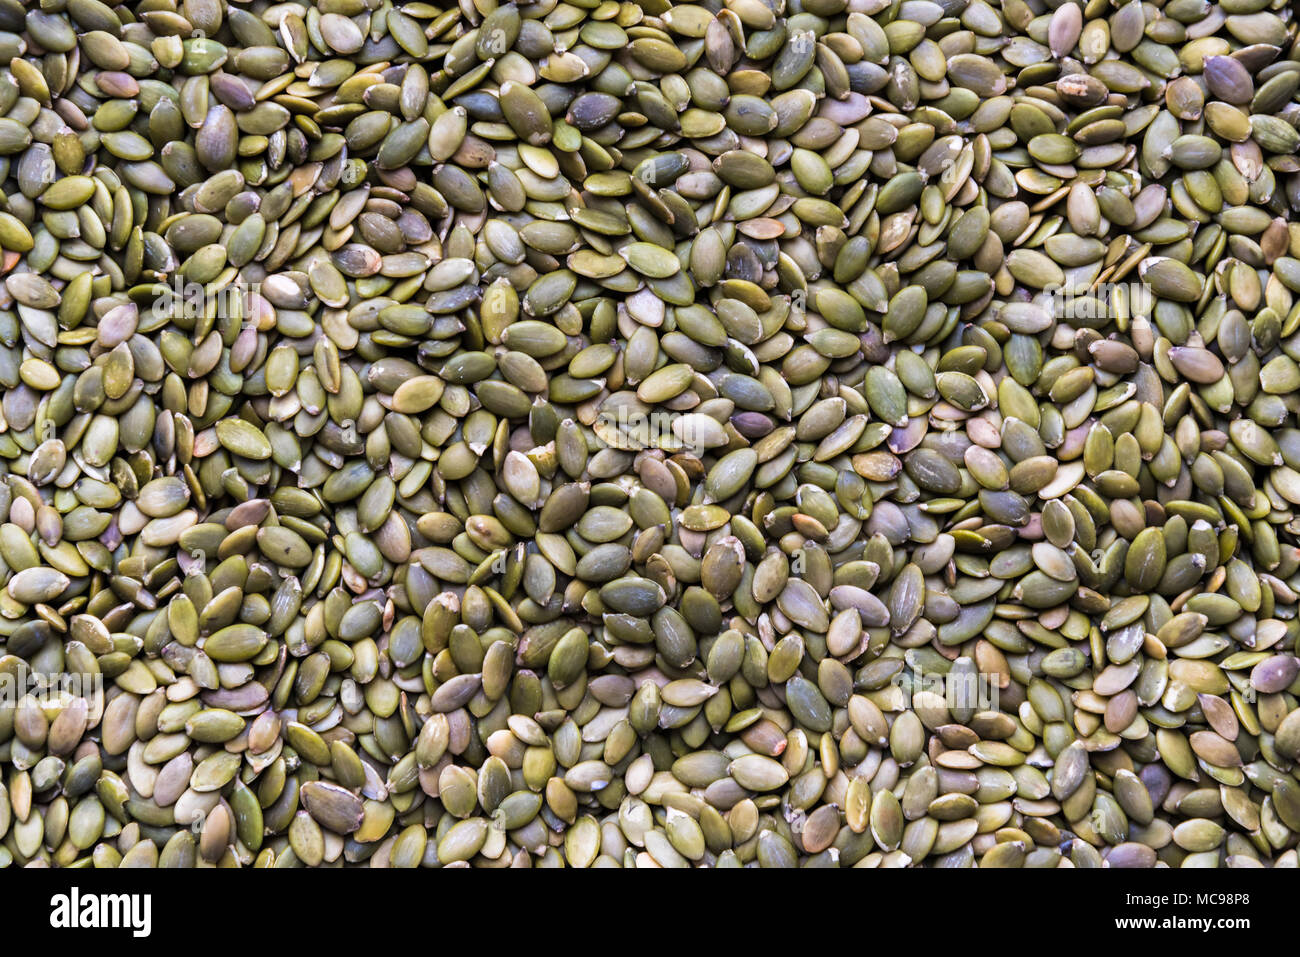 Full frame close-up raw pumpkin seeds in flat lay format - Stock Image